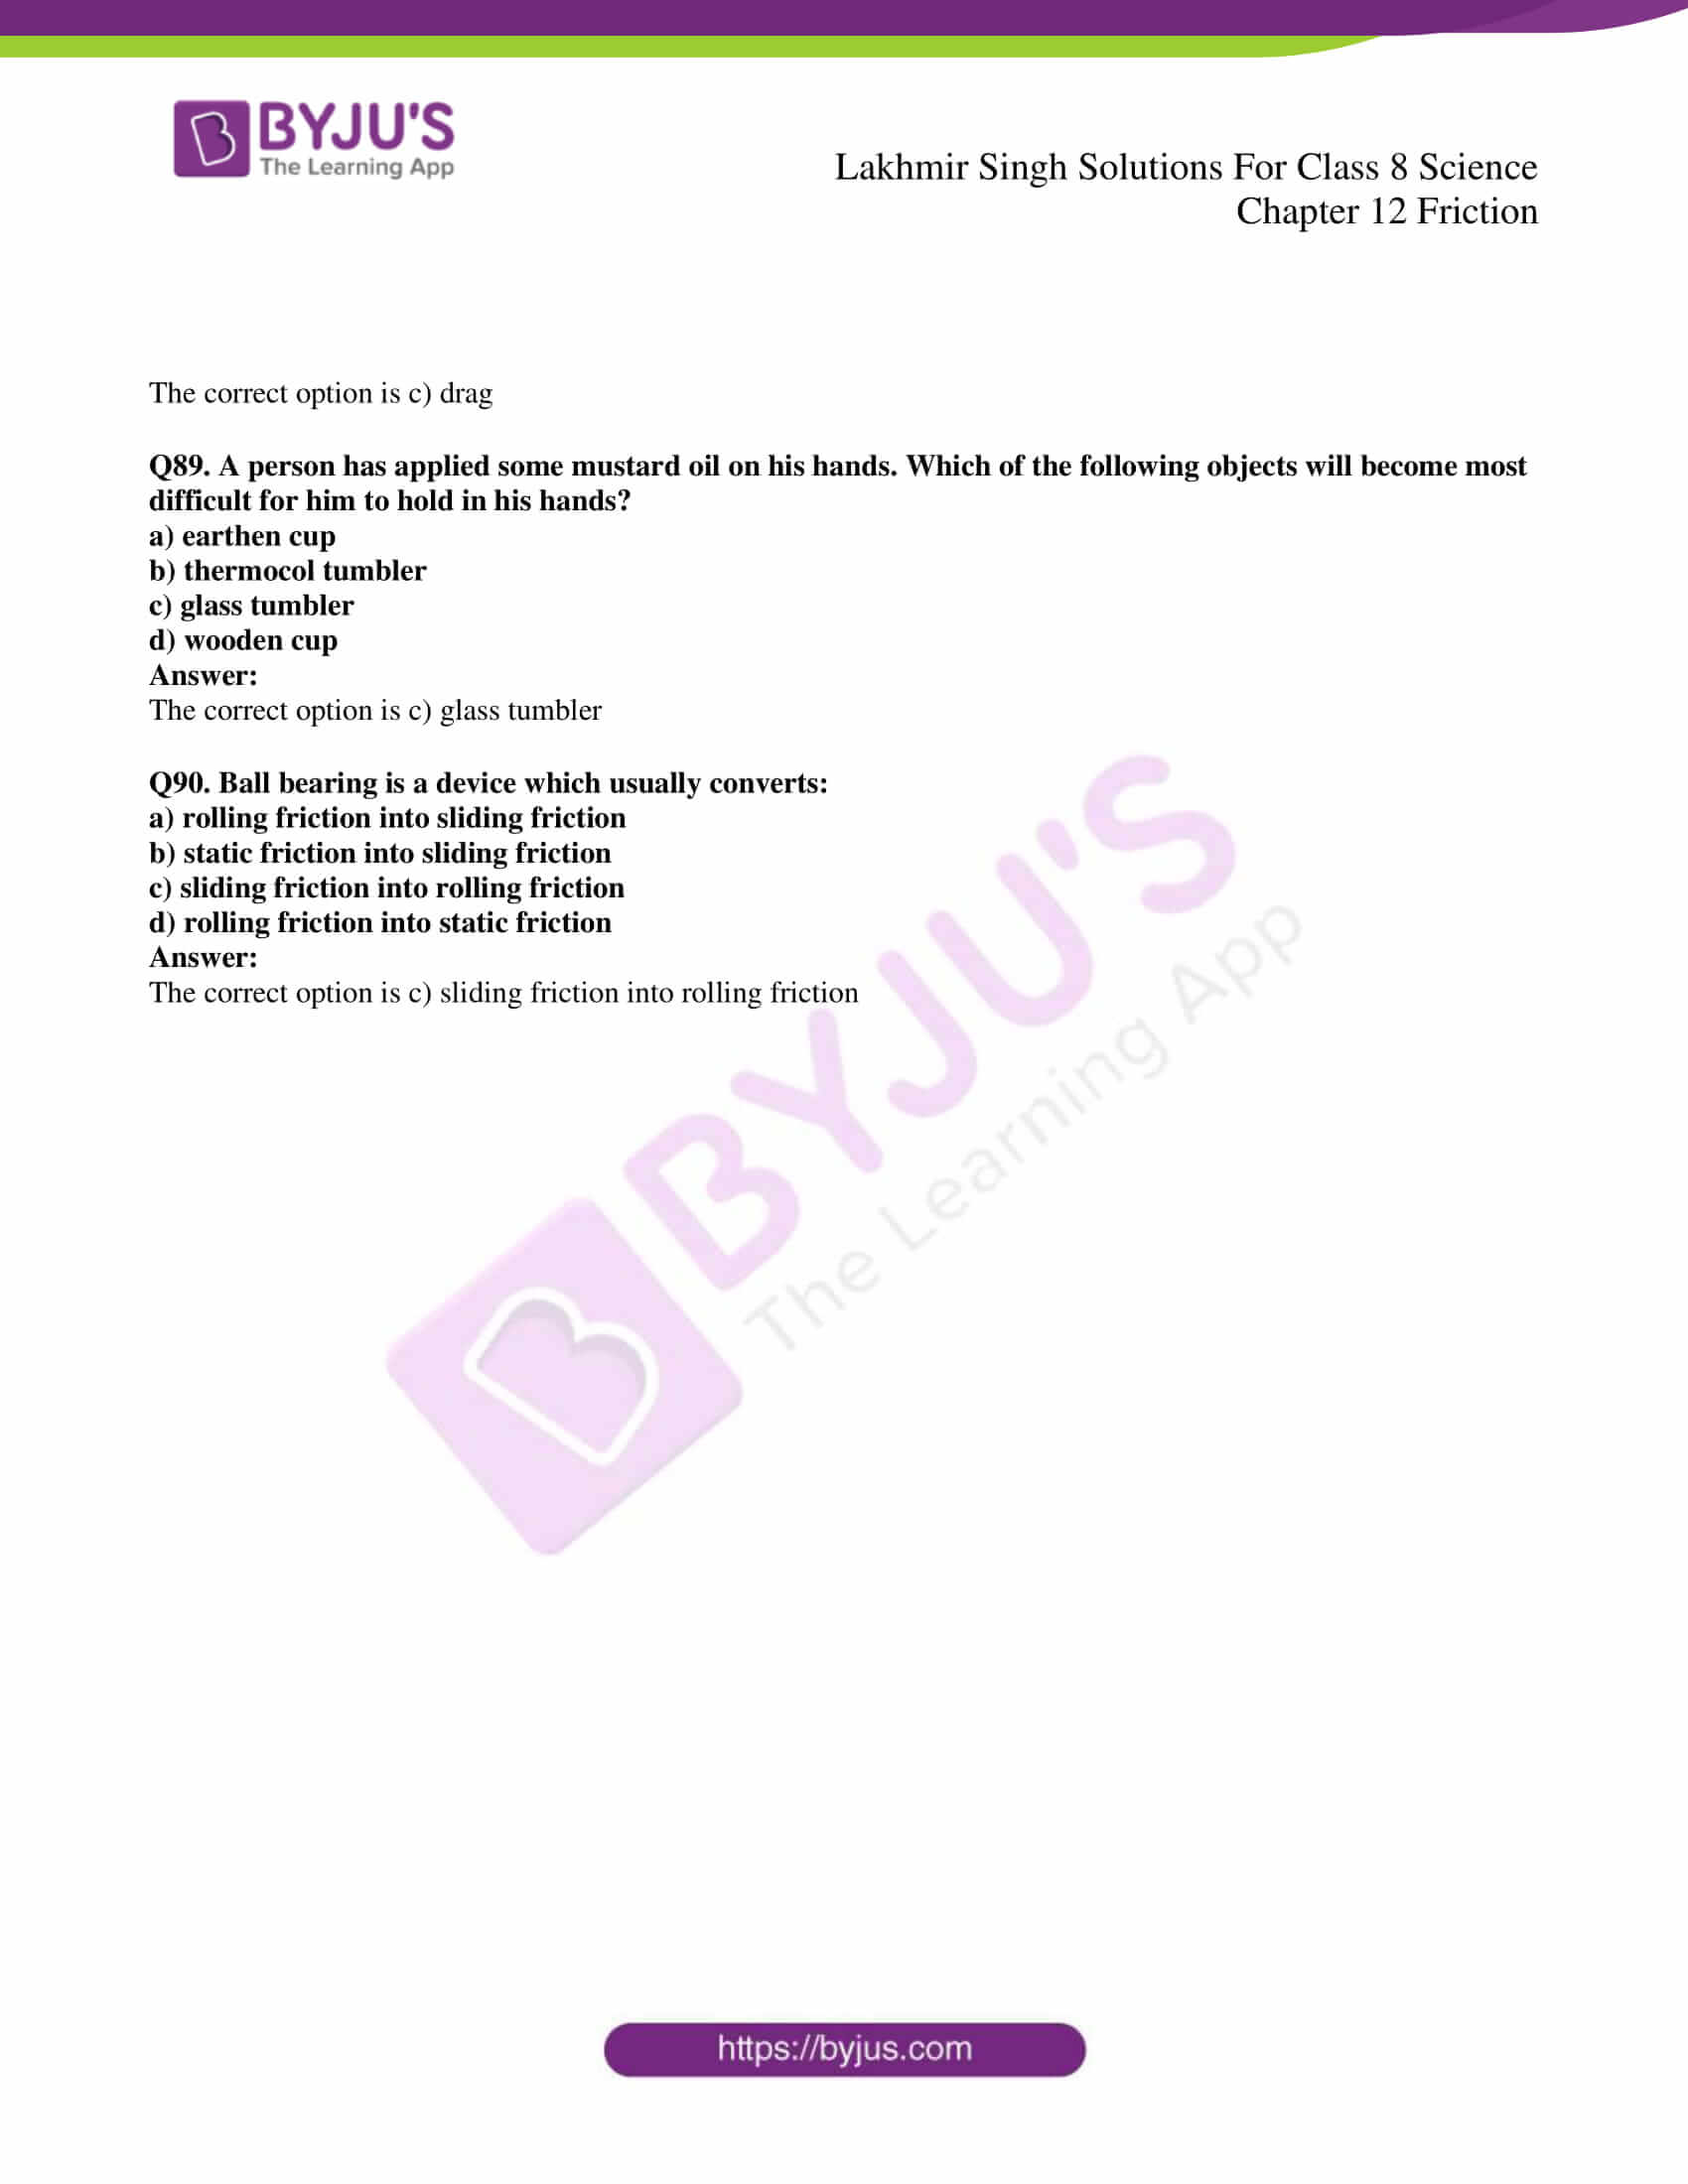 lakhmir singh solutions for class 8 science chapter 12 20